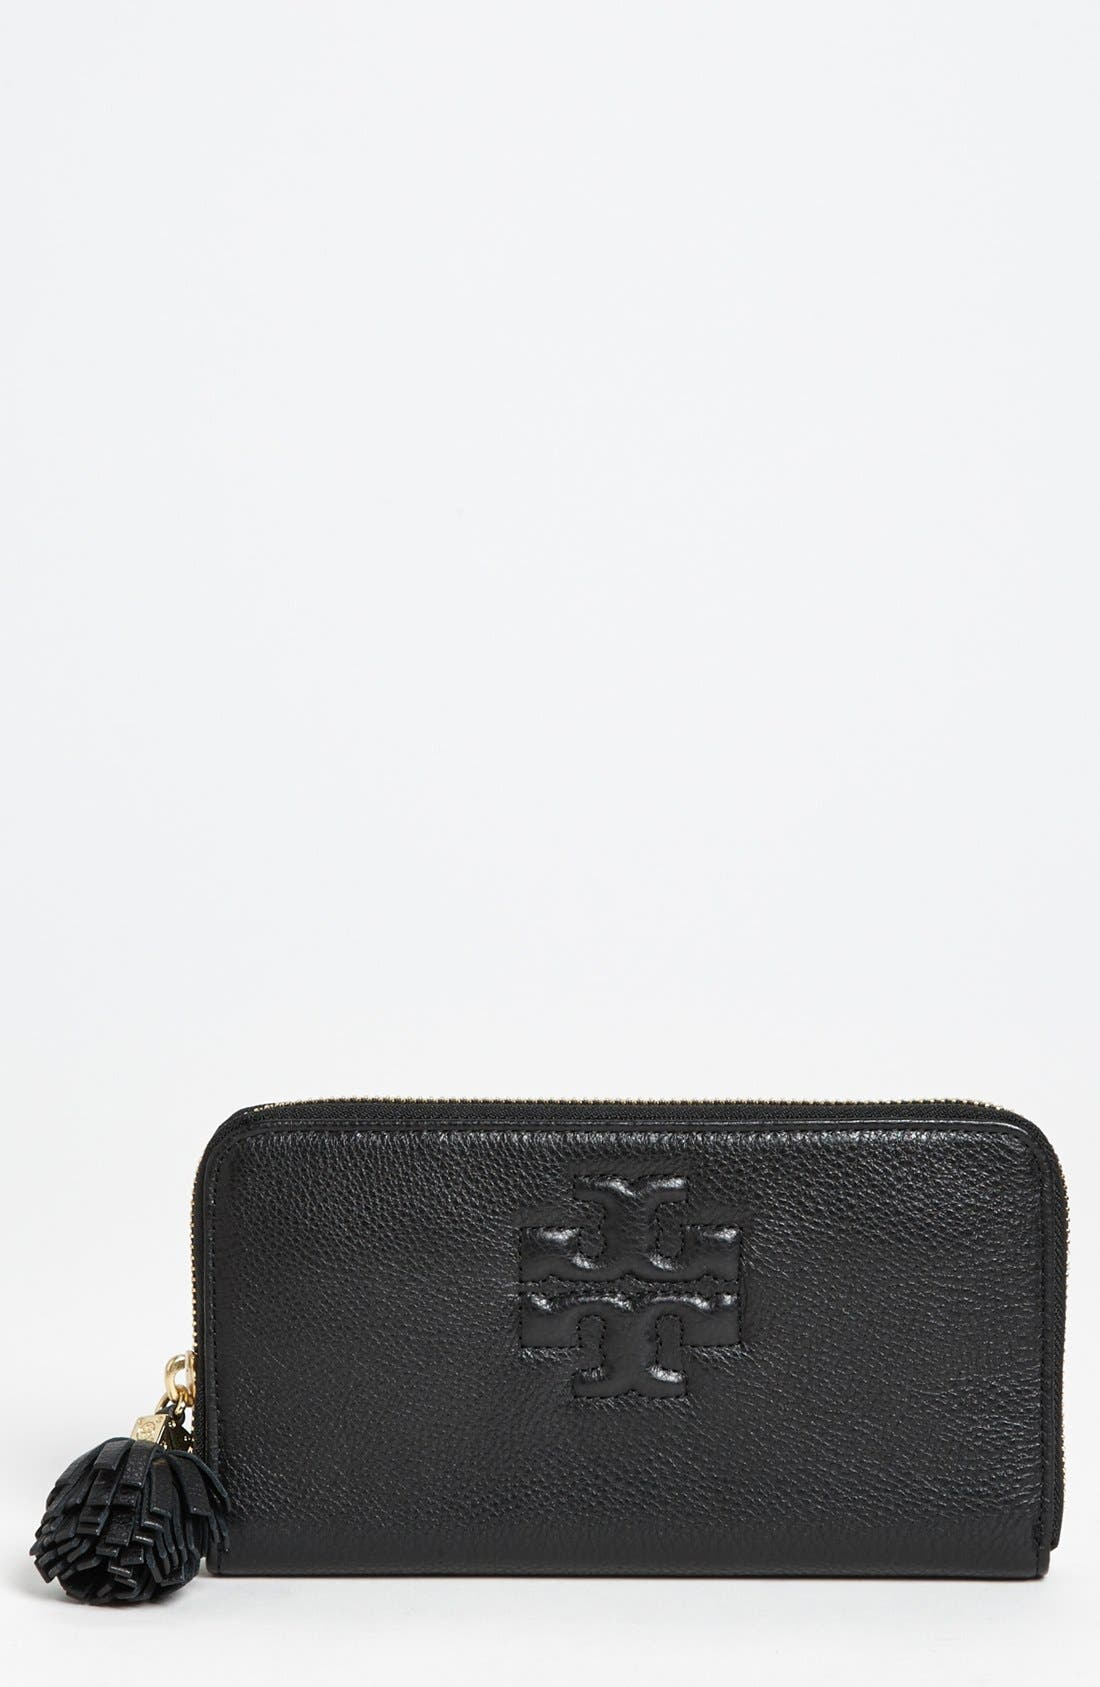 Alternate Image 1 Selected - Tory Burch 'Thea' Continental Wallet